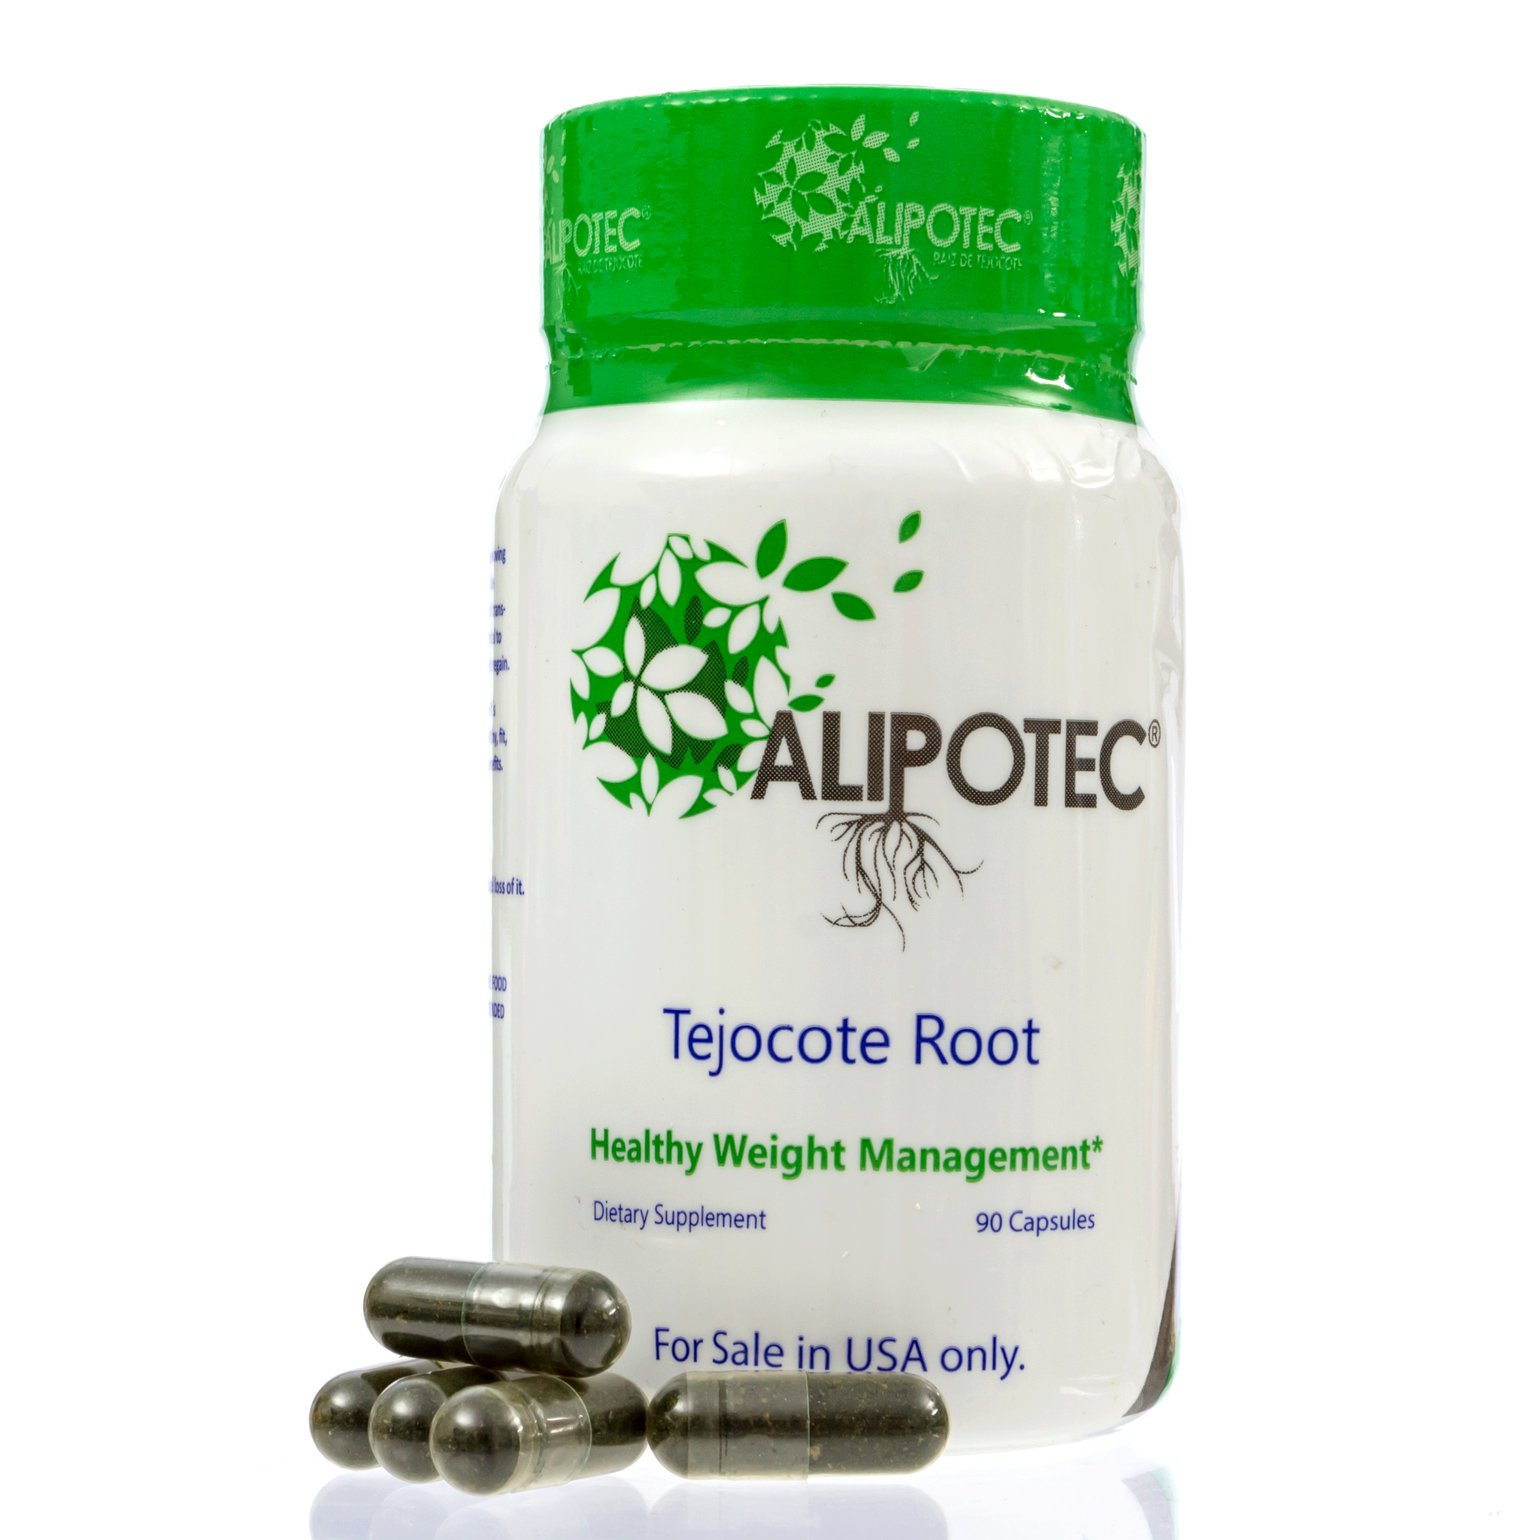 Alipotec Capsules Raiz de Tejocote Root - 3 Month Supply